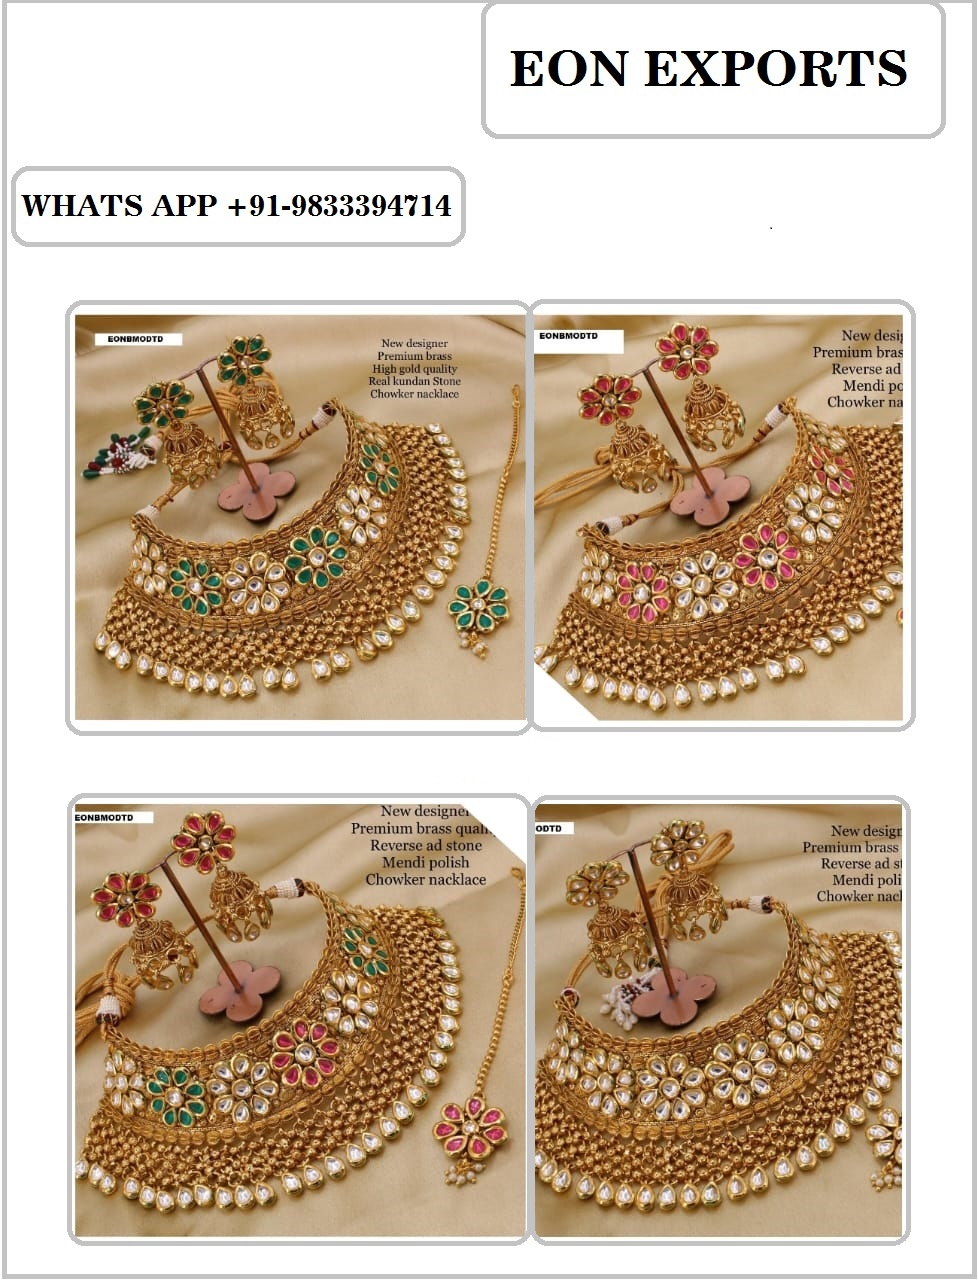 Imitation Jewellery Manufacturers Supplier Exporter Chennai